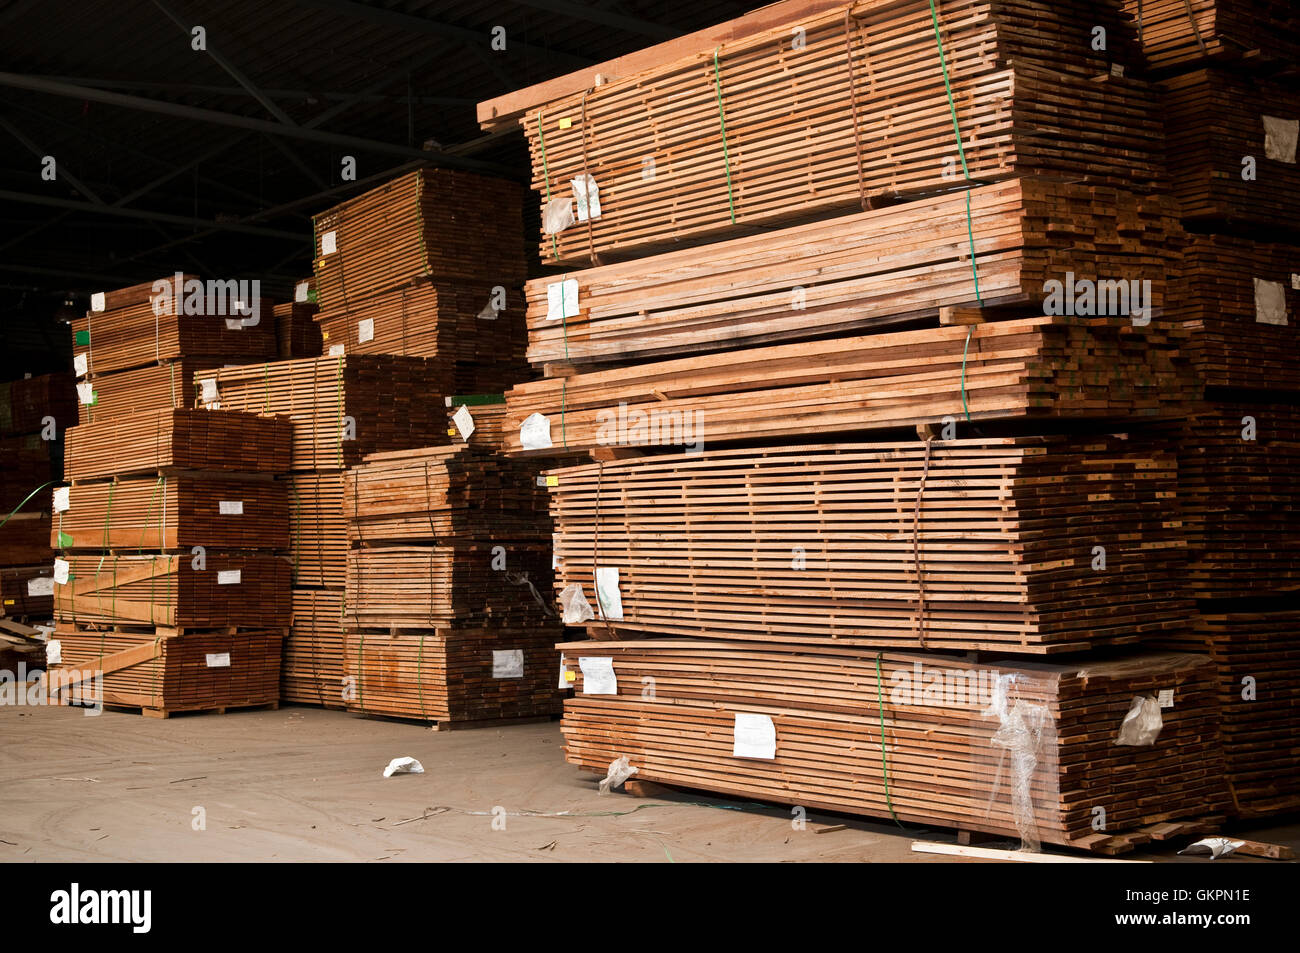 Large stacks of a hardwood planks - Stock Image